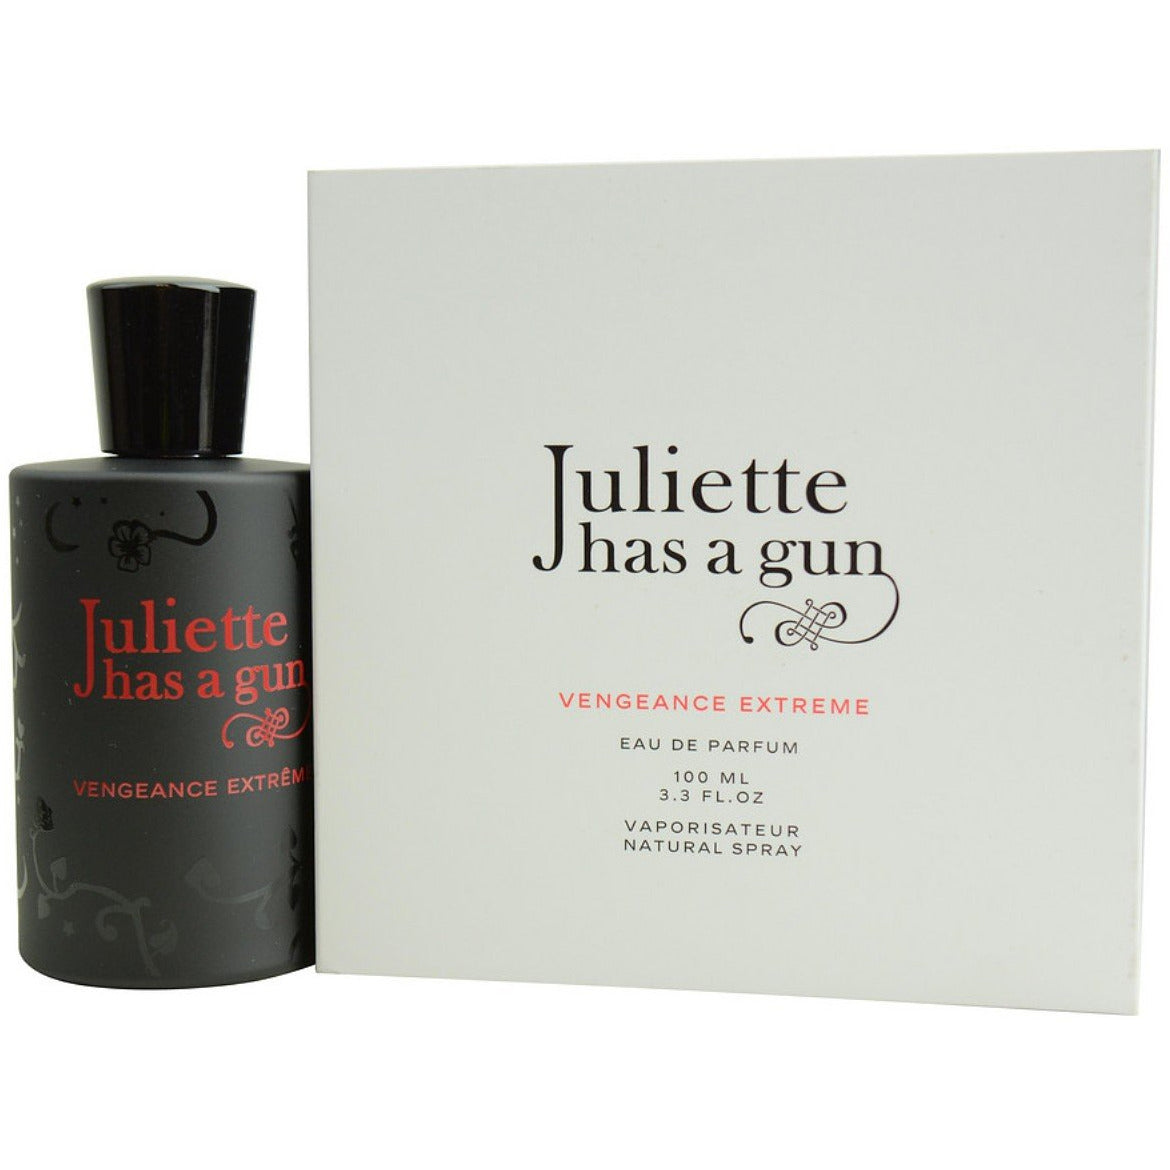 LADY VENGEANCE EXTREME By Juliette Has A Gun perfume EDP 3.3 / 3.4 oz New in Box